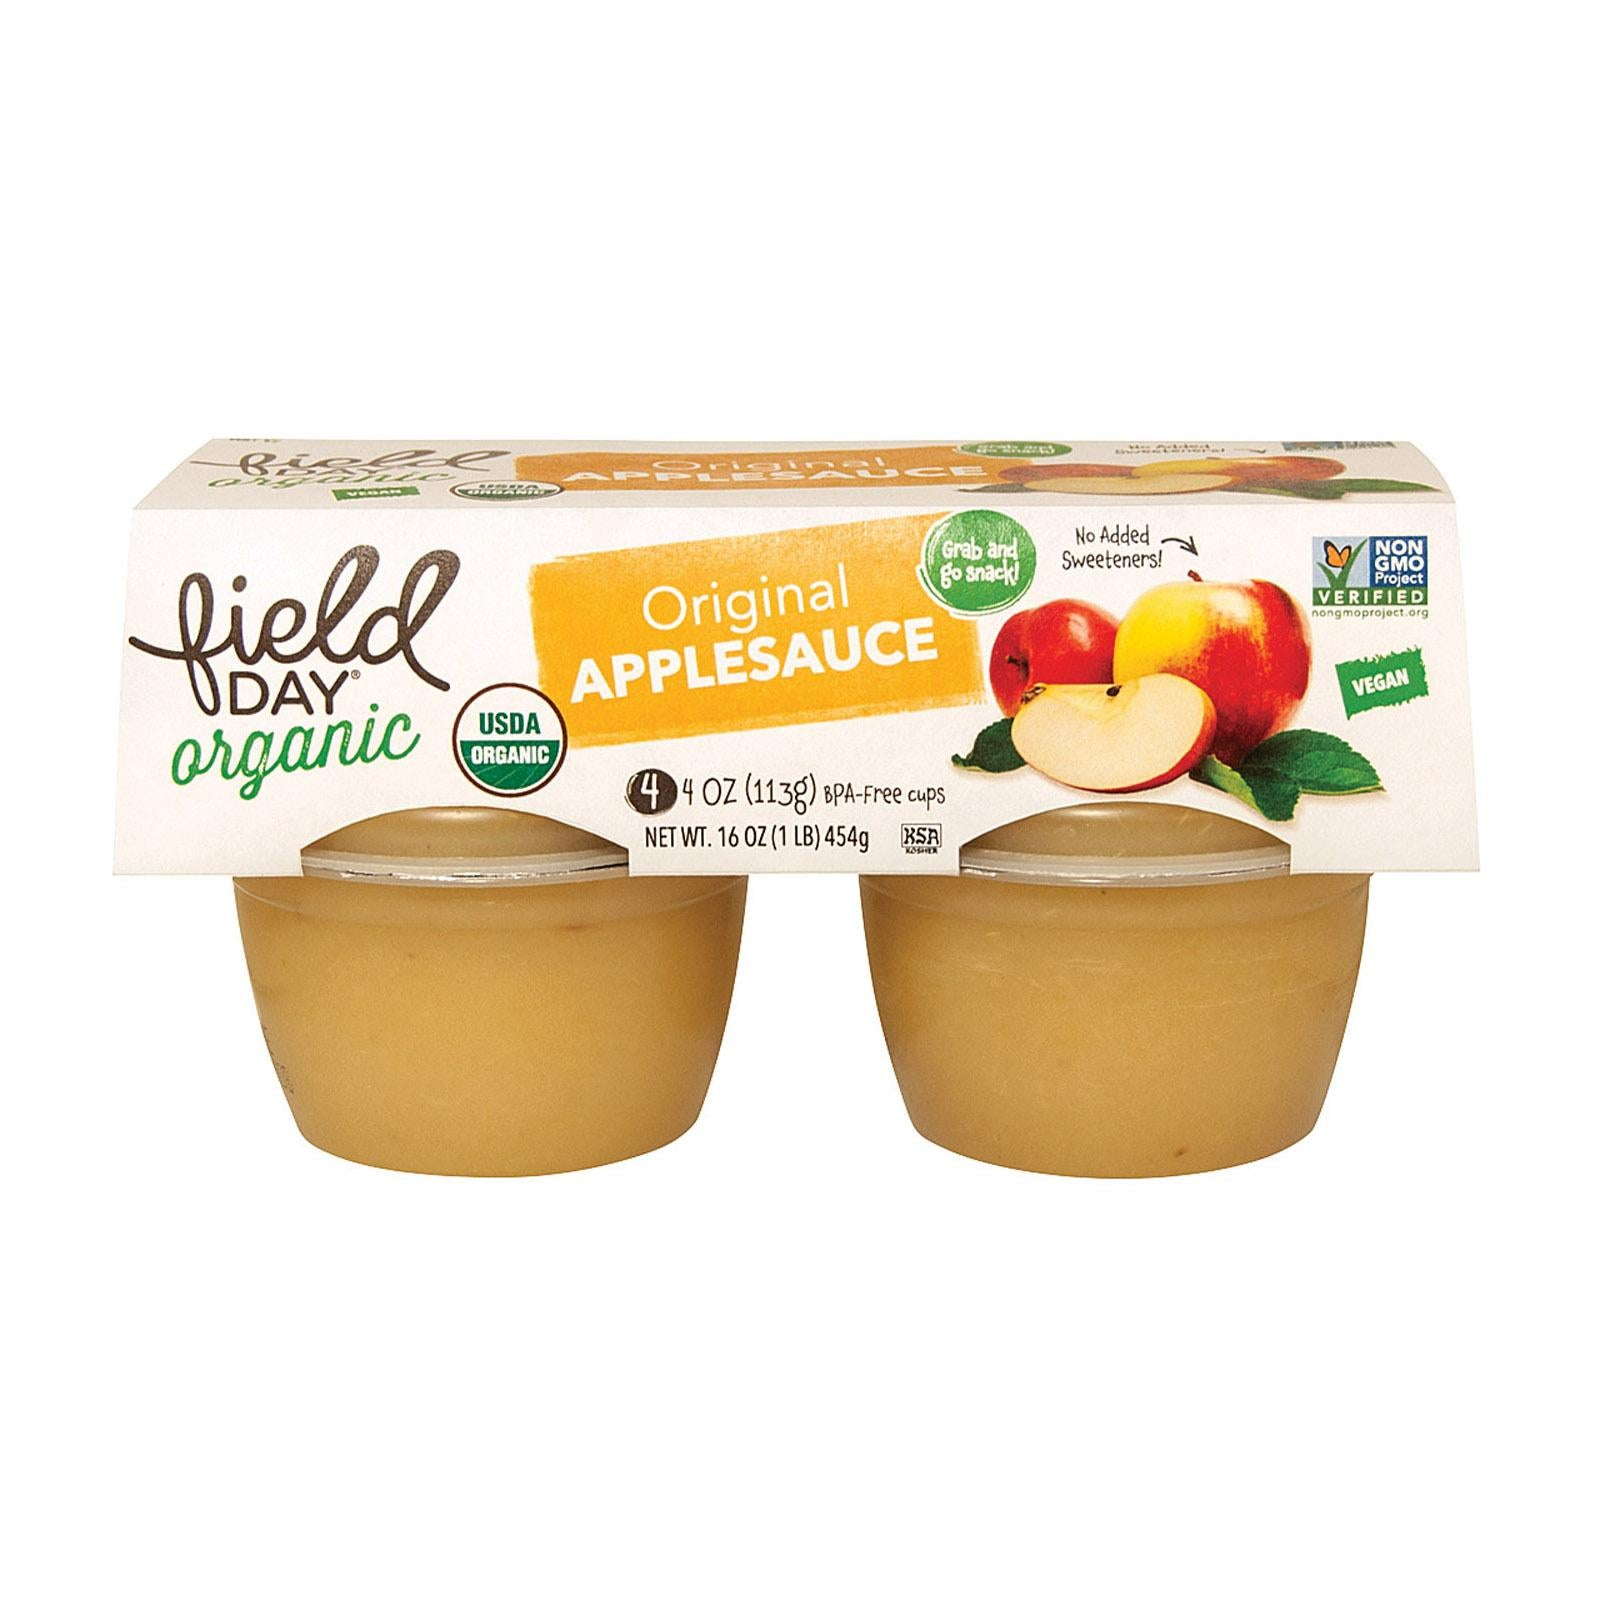 Field Day Organic Applesauce Cups